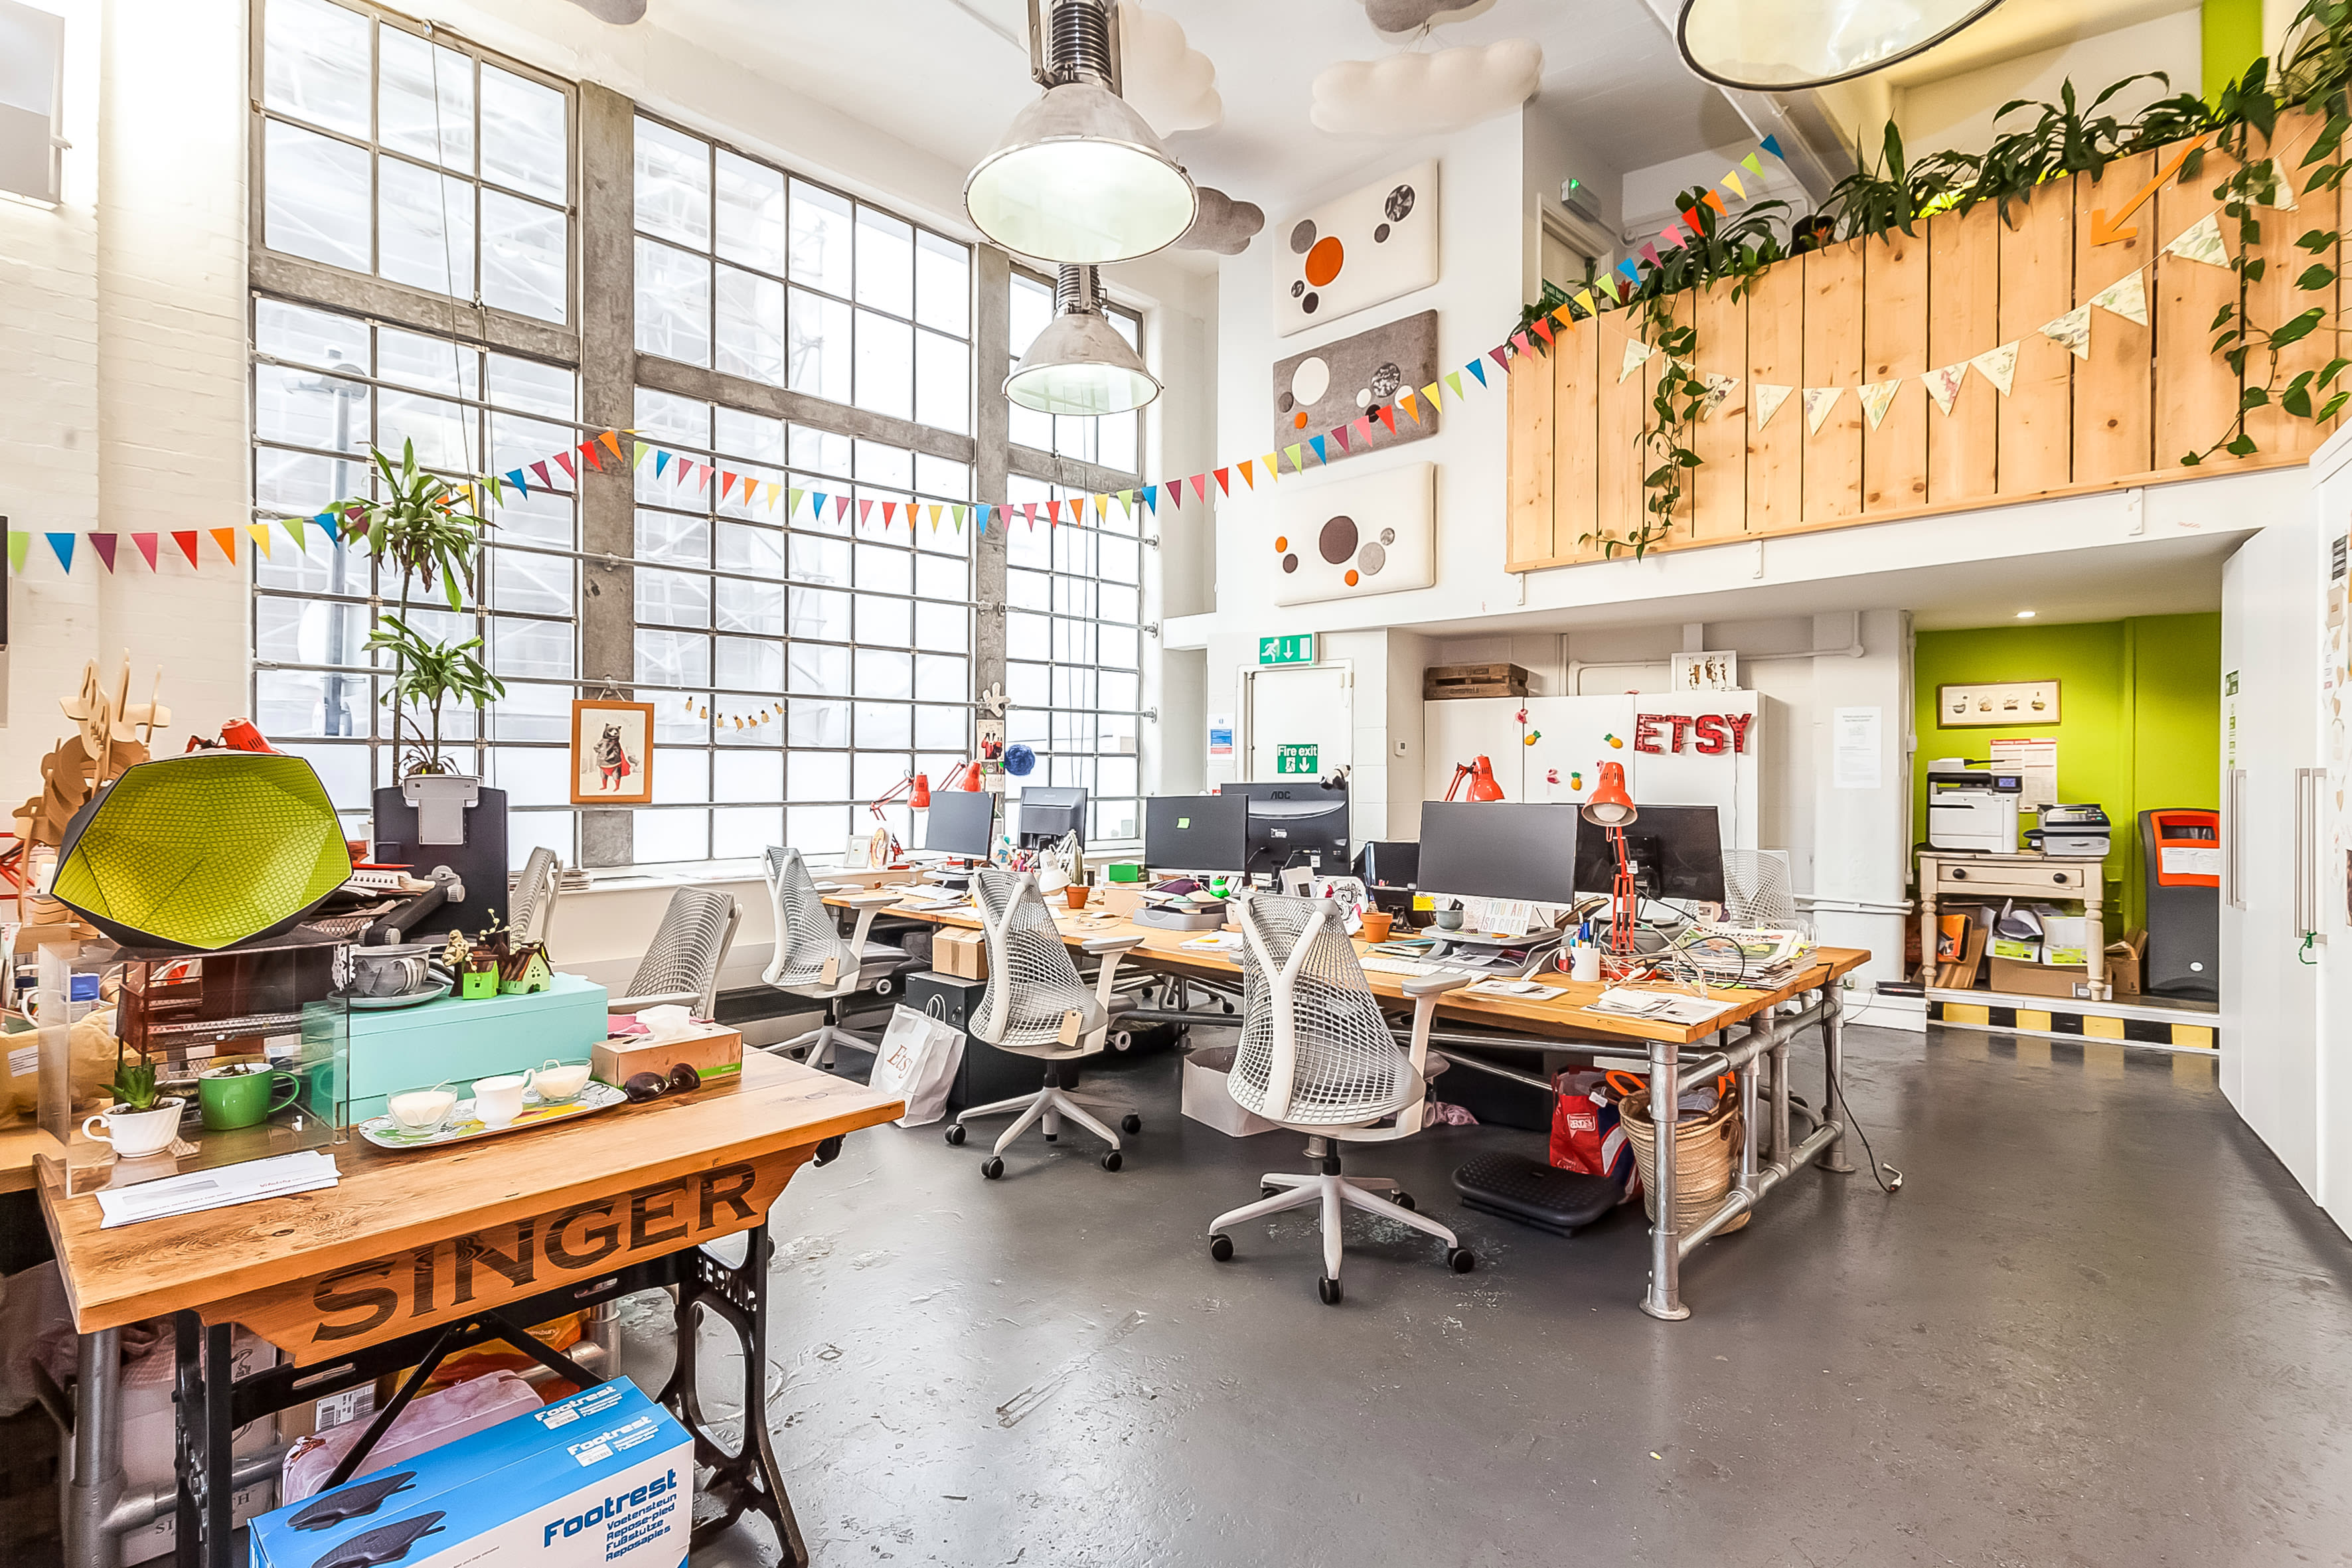 Office space for rent in Washington D.C.